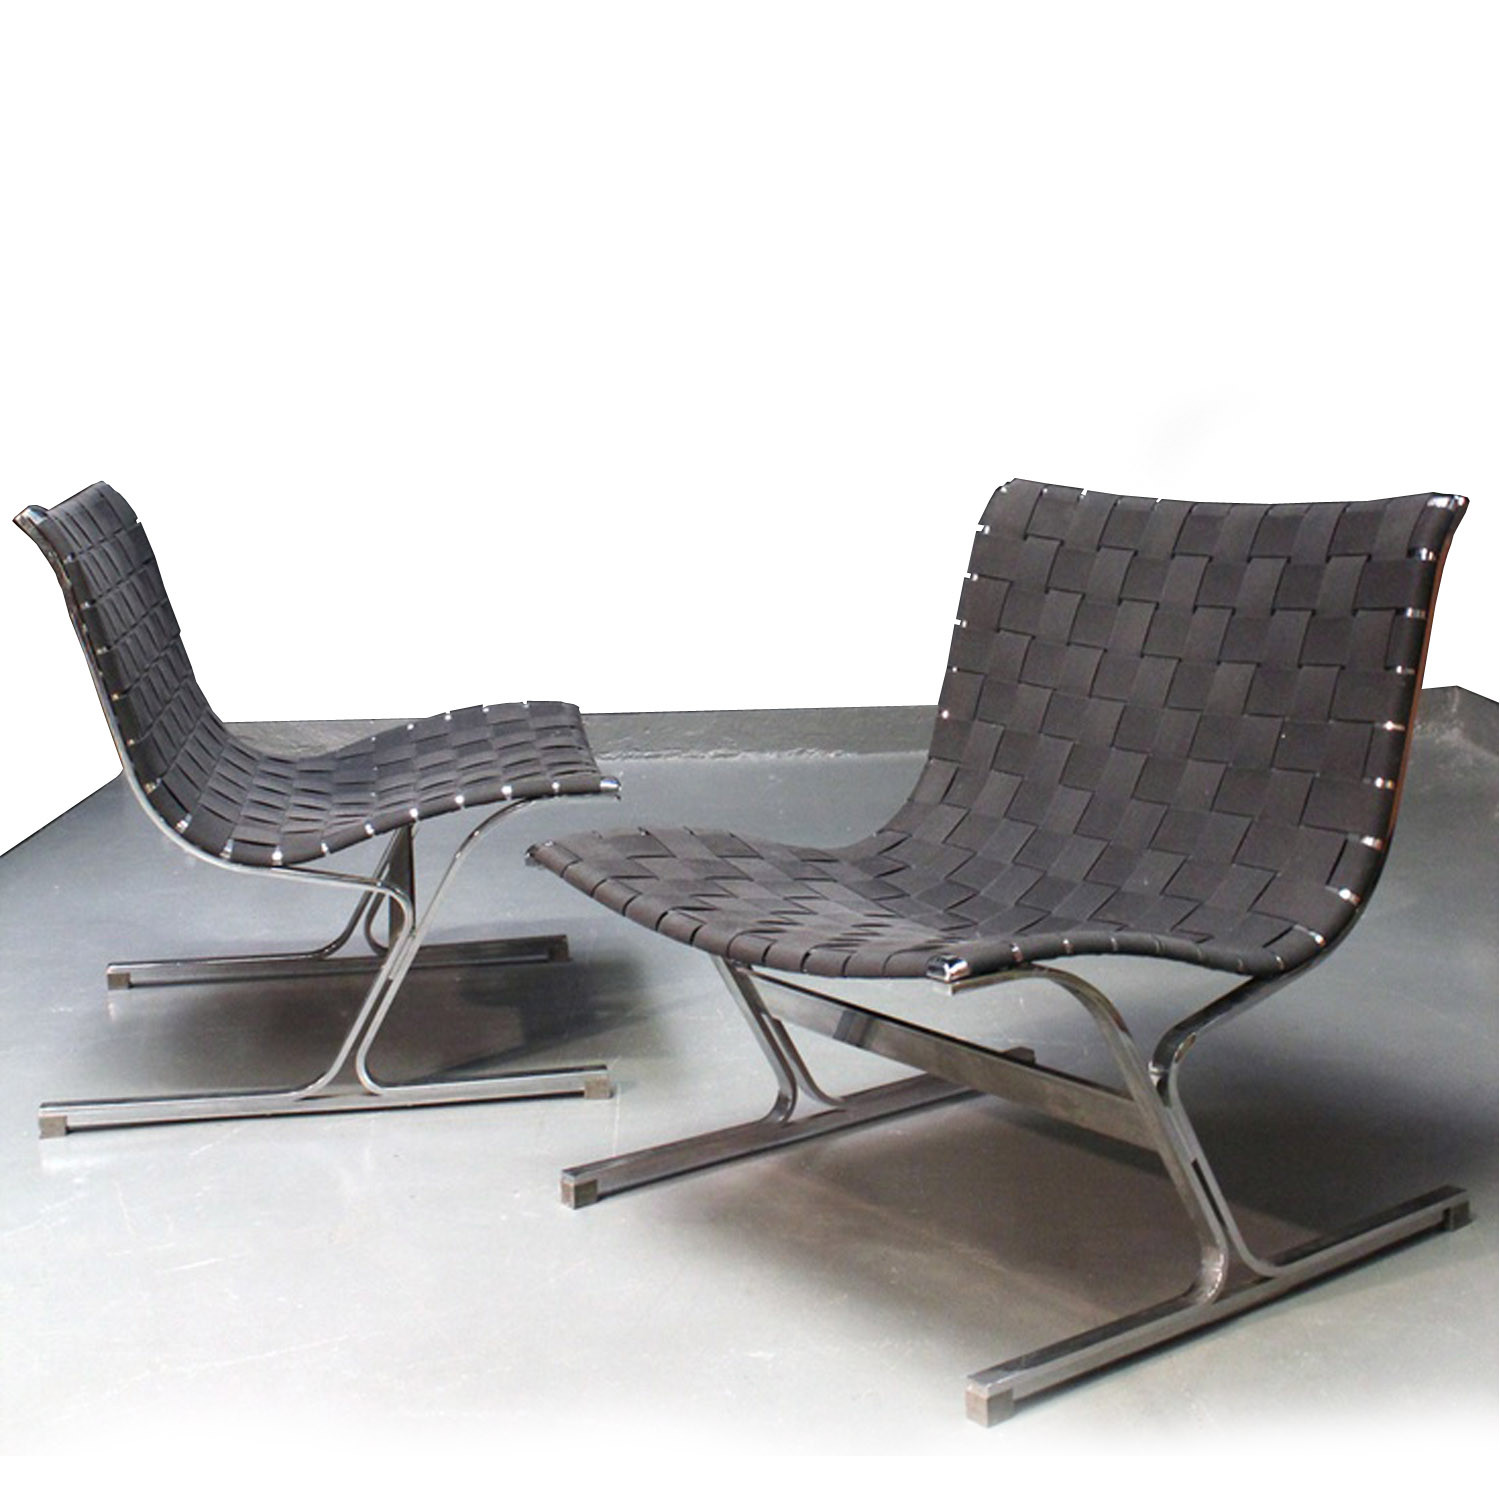 Luar Lounge Chairs by ICF Spa